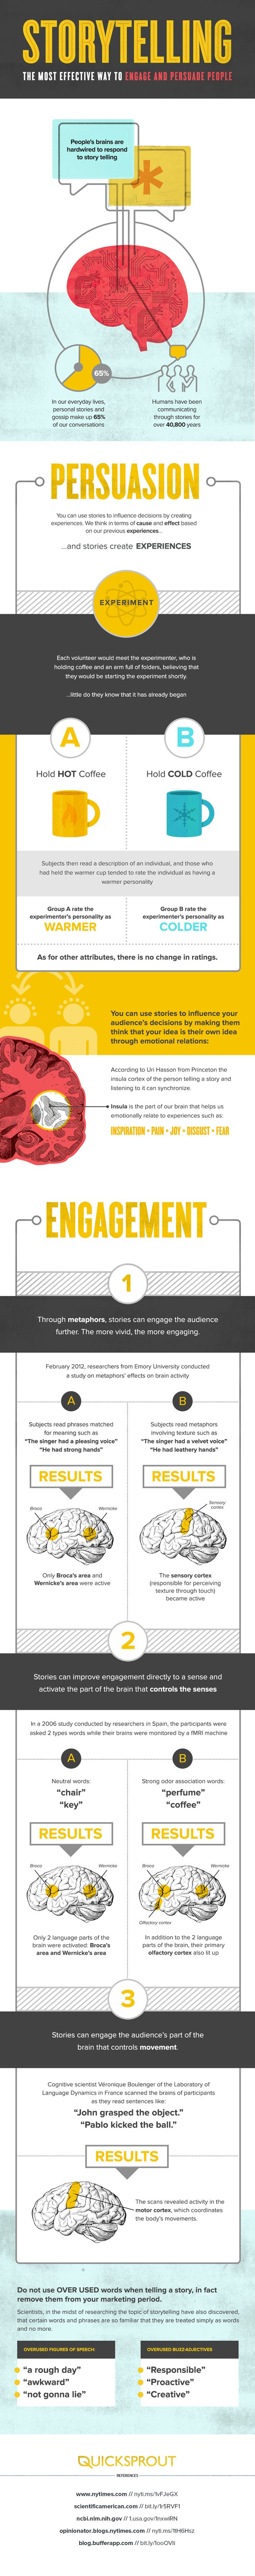 How to Engage and Persuade People Through Storytelling - infographic